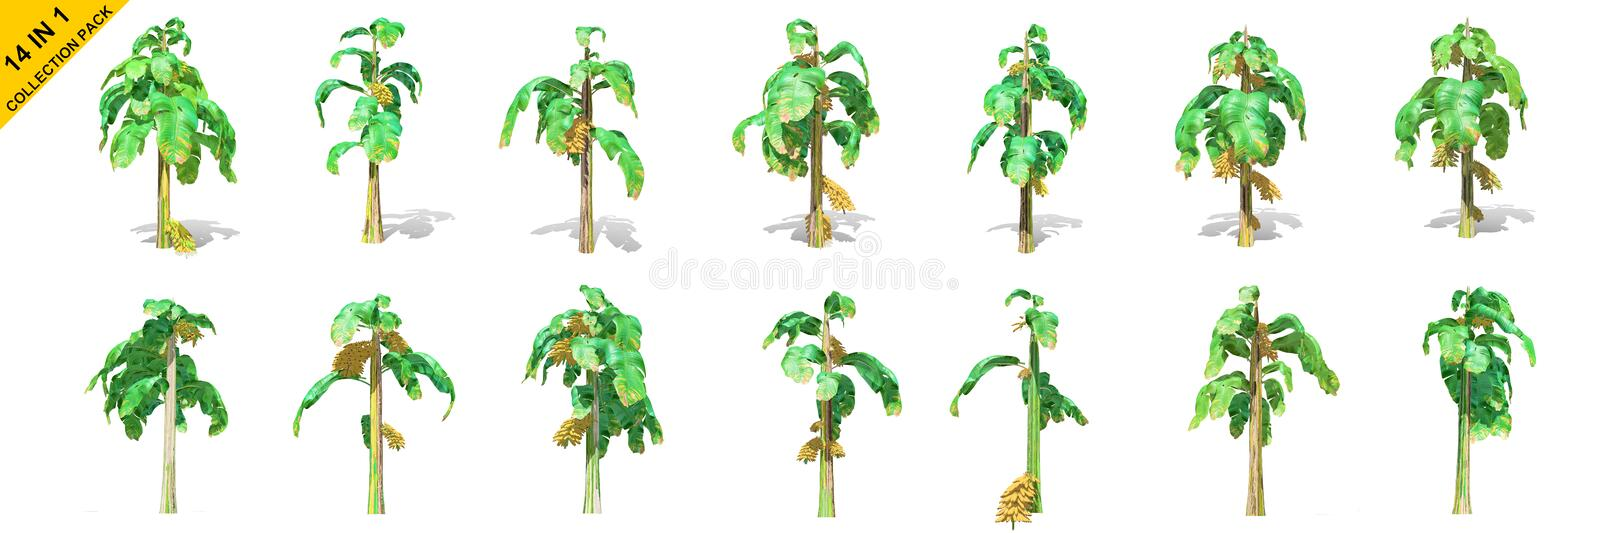 3D rendering - 14 in 1 collection of banana trees isolated over a white background stock illustration